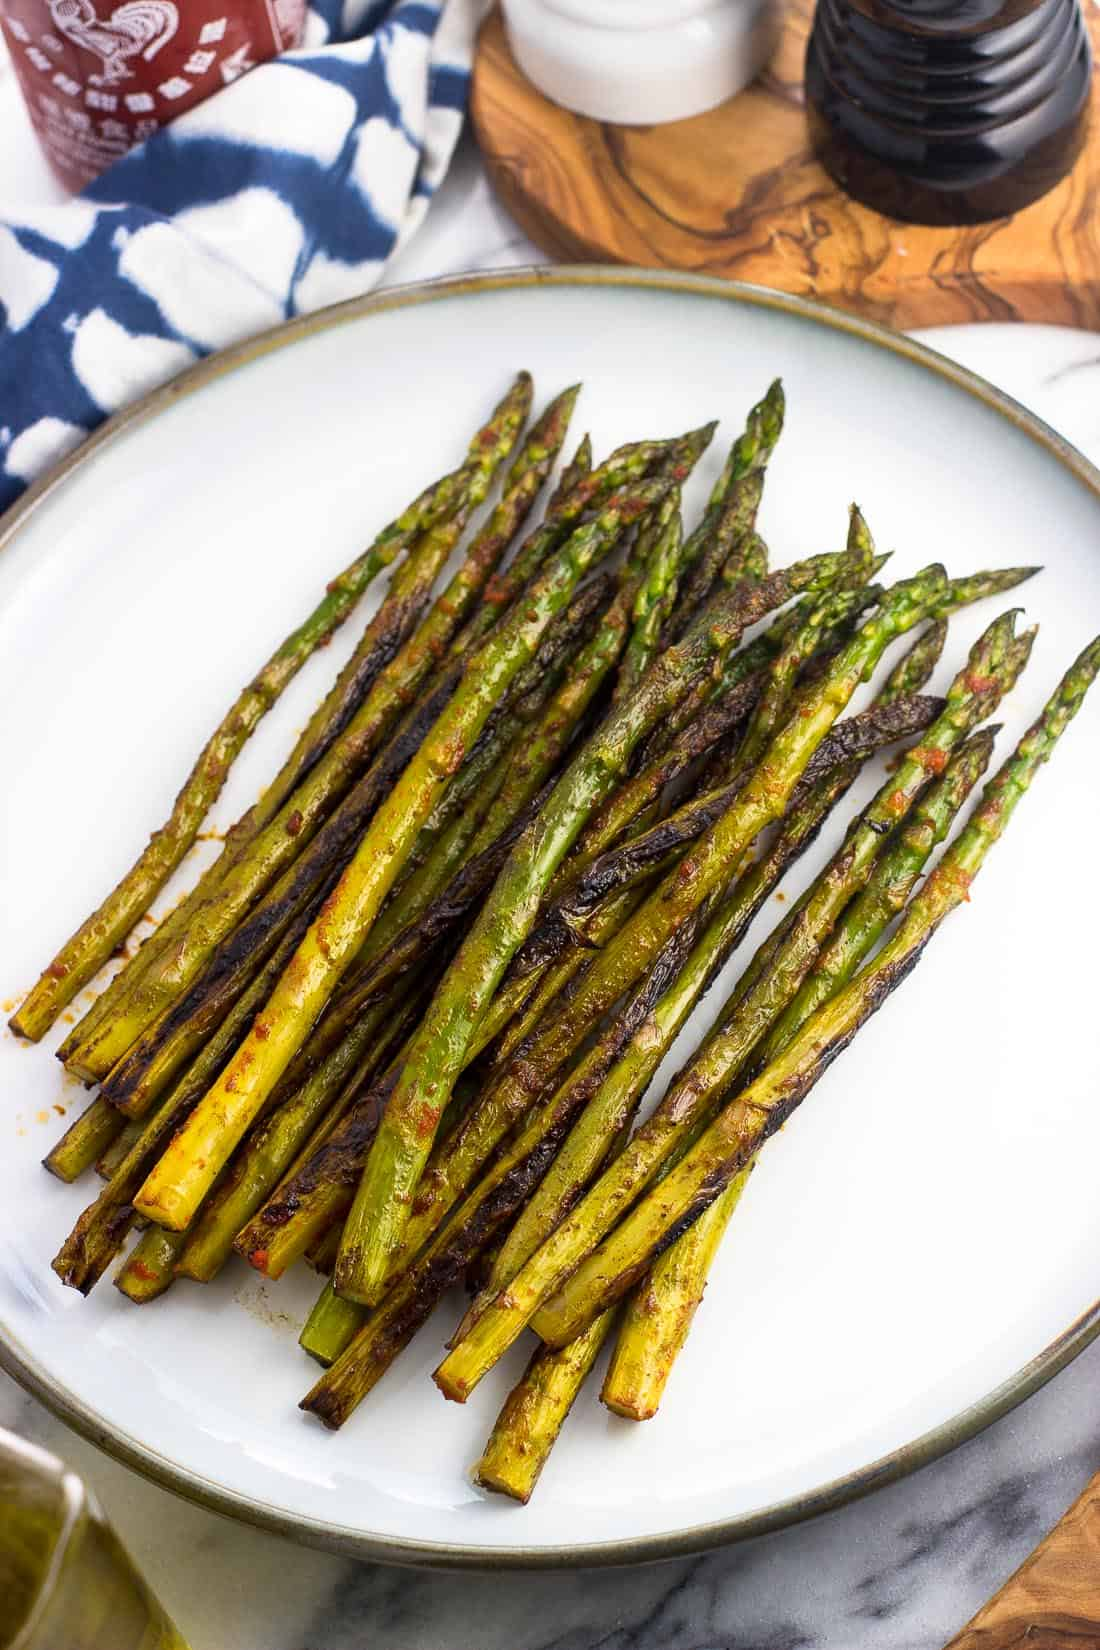 Sauteed asparagus on a serving plate after being roasted on the stovetop and seasoned with sriracha